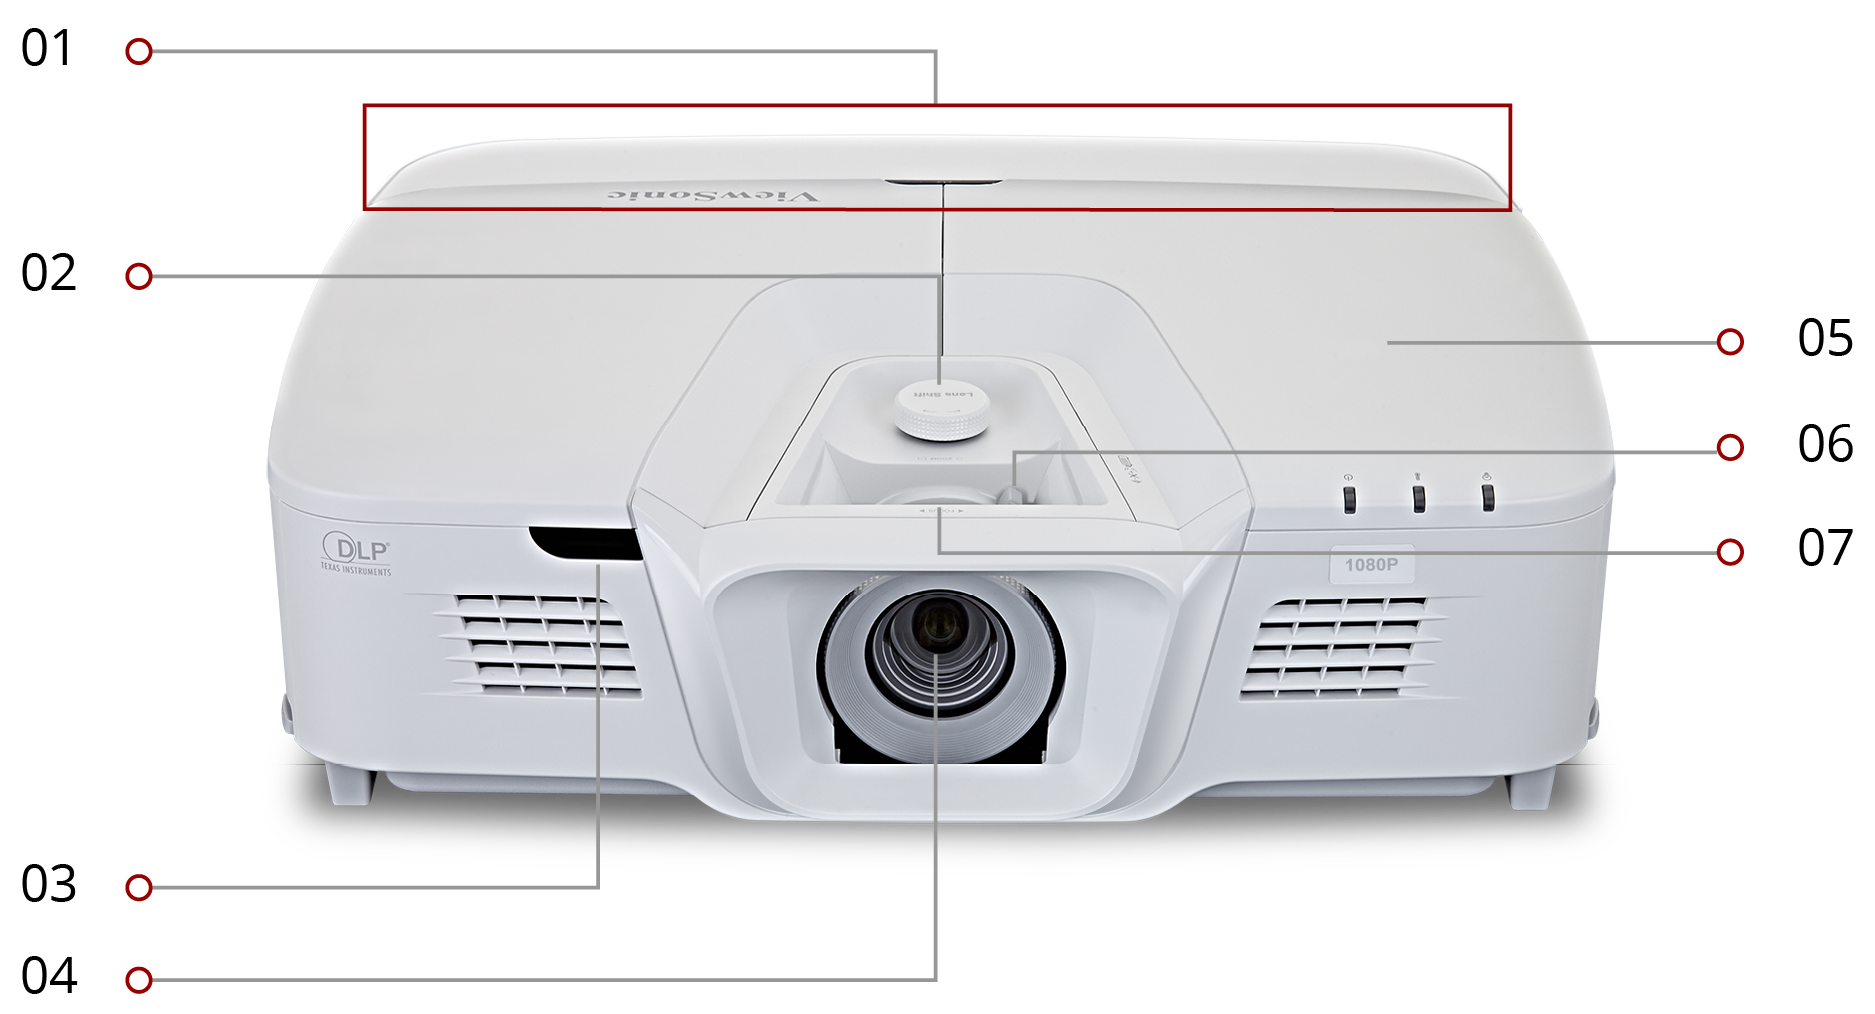 Viewsonic Projector Pro8530hdl Fhd 1080p 5200 Lm 150001 3d 16x 20w Cus In126a Lumens Hdmi Lens Shift